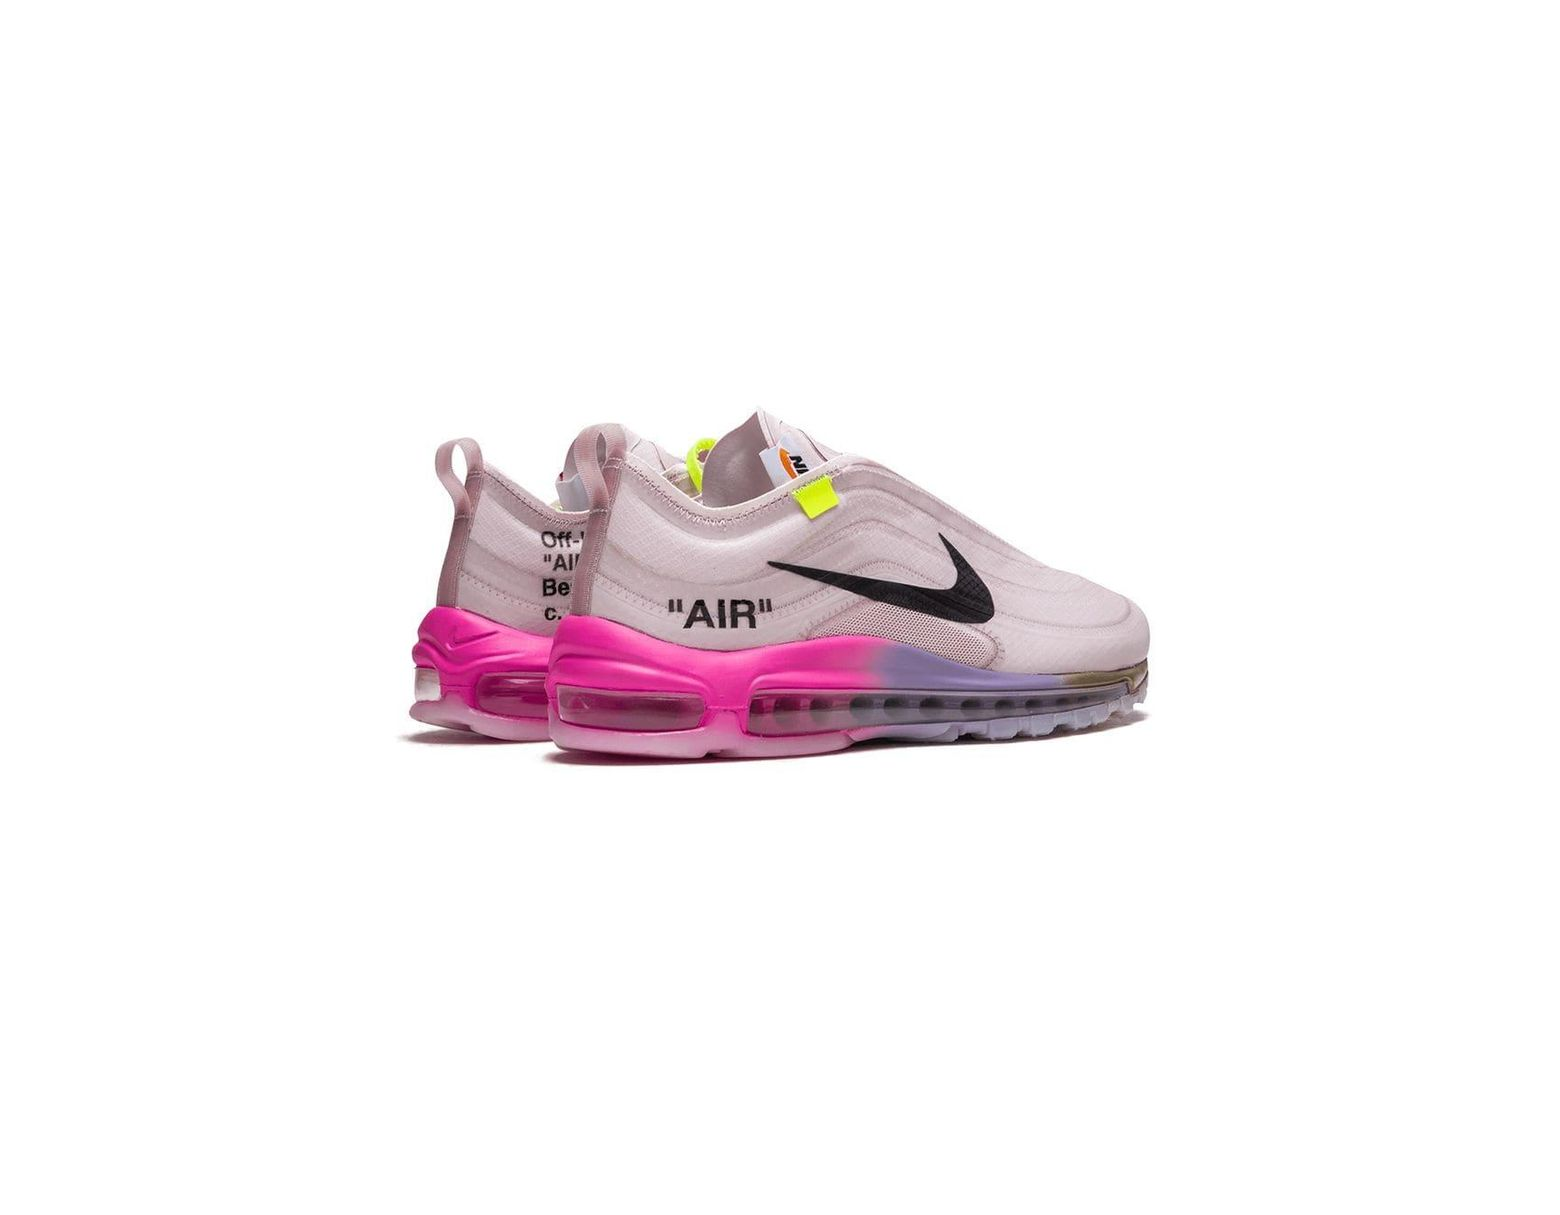 Nike Off White X The 10 Air Max 97 Og Sneakers In Pink For Men Lyst